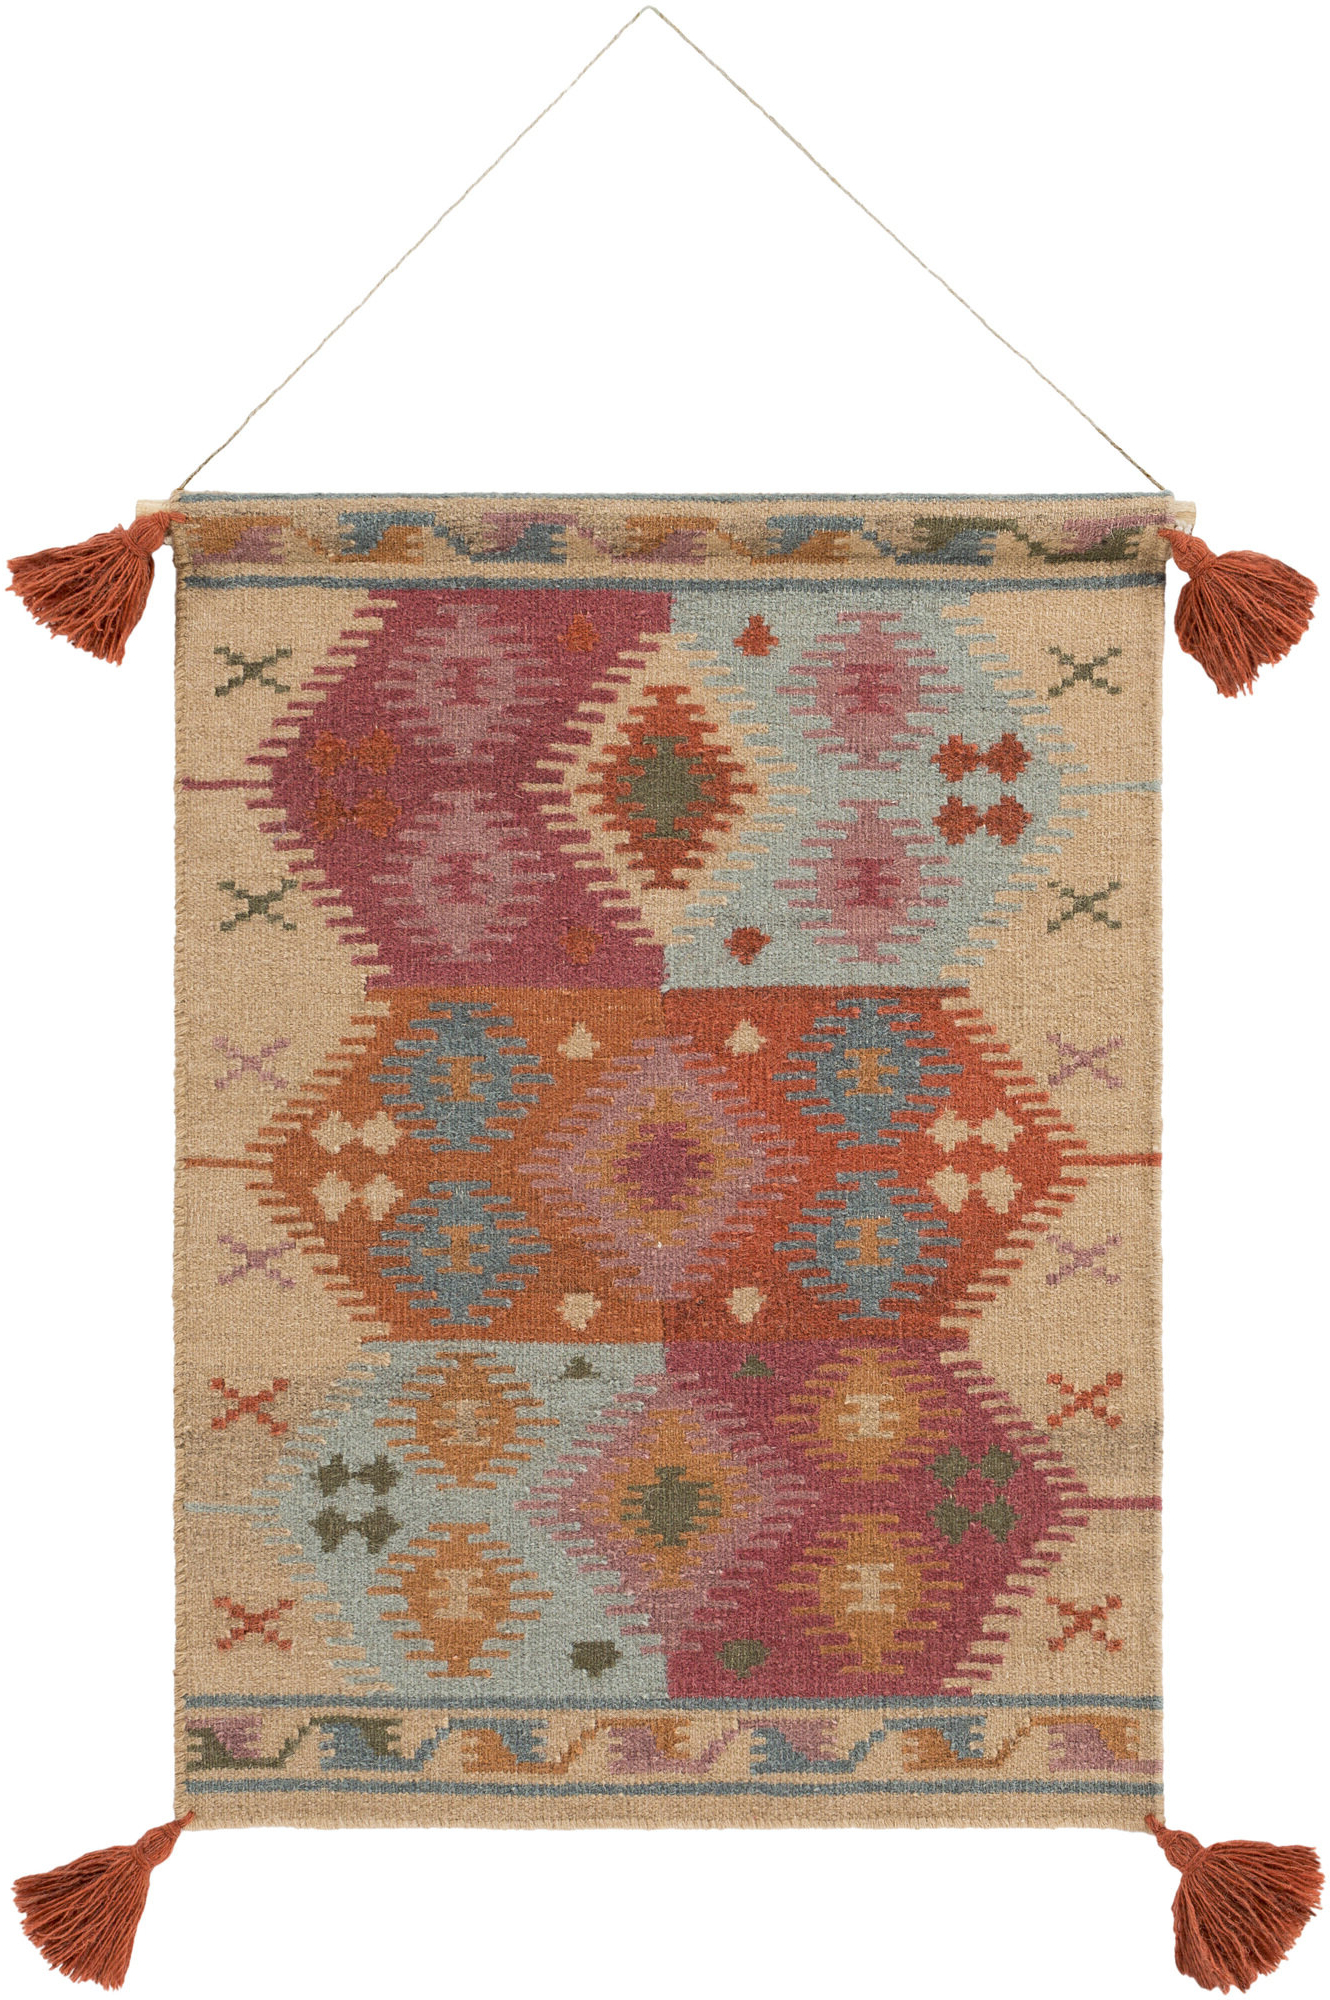 Latest Sariah Wool Wall Hanging With Hanging Accessories Included With Blended Fabric Clancy Wool And Cotton Wall Hangings With Hanging Accessories Included (View 4 of 20)